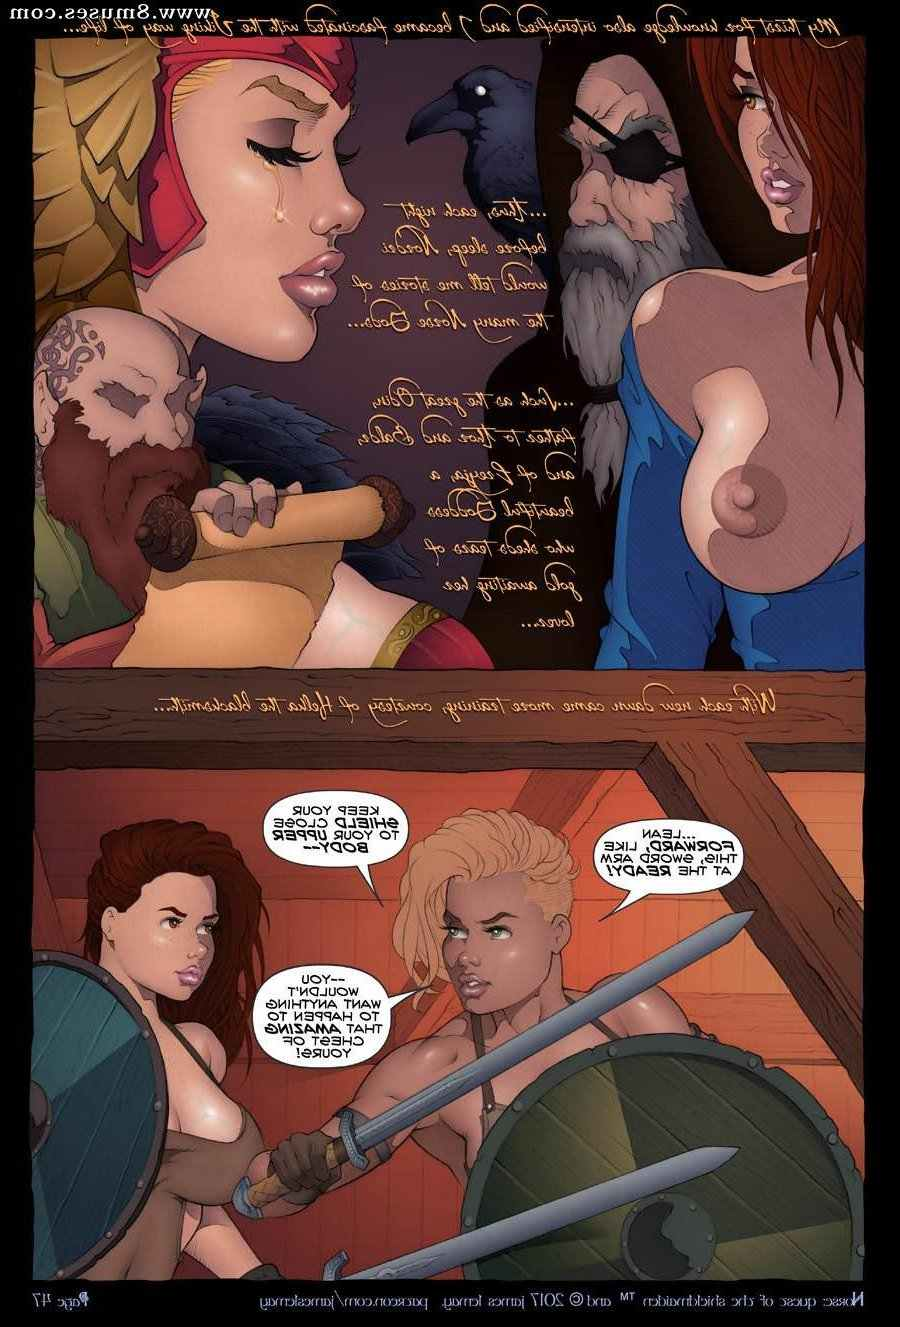 James-Lemay-Comics/Norse-Quest-of-the-Shield-Maiden Norse_Quest_of_the_Shield_Maiden__8muses_-_Sex_and_Porn_Comics_47.jpg